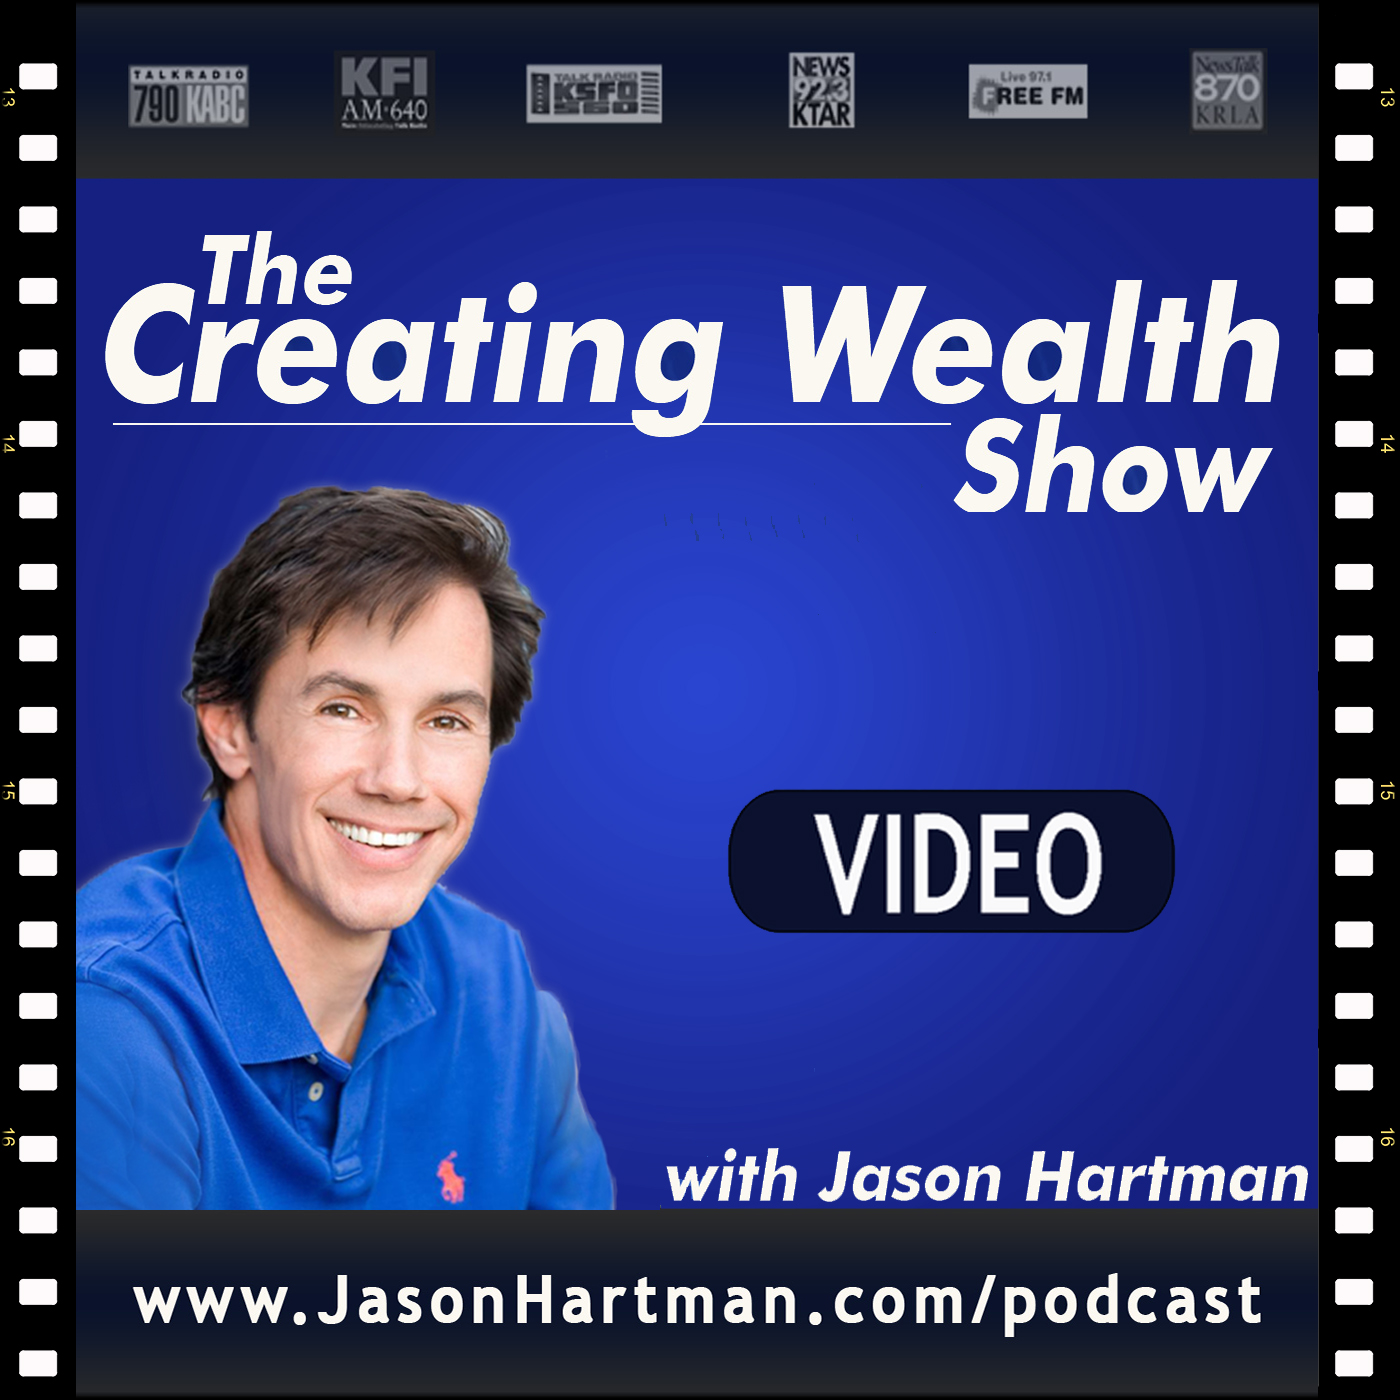 Creating Wealth Video Podcast with Jason Hartman | No-Hype Real Estate Investing Strategies for Achieving Financial Freedom